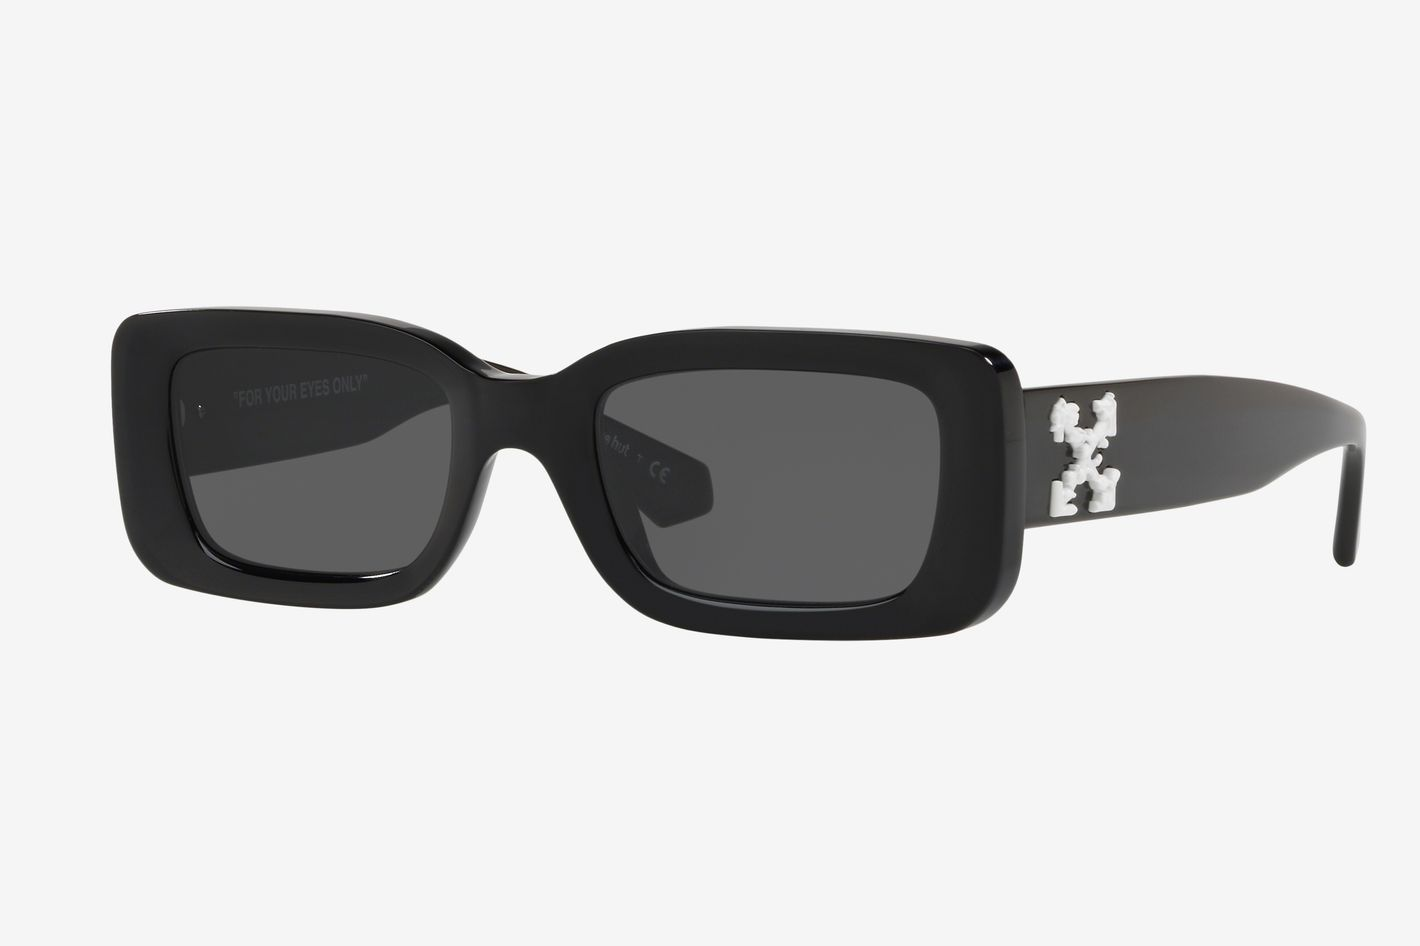 OFF-WHITE x Sunglass Hut Sunglasses